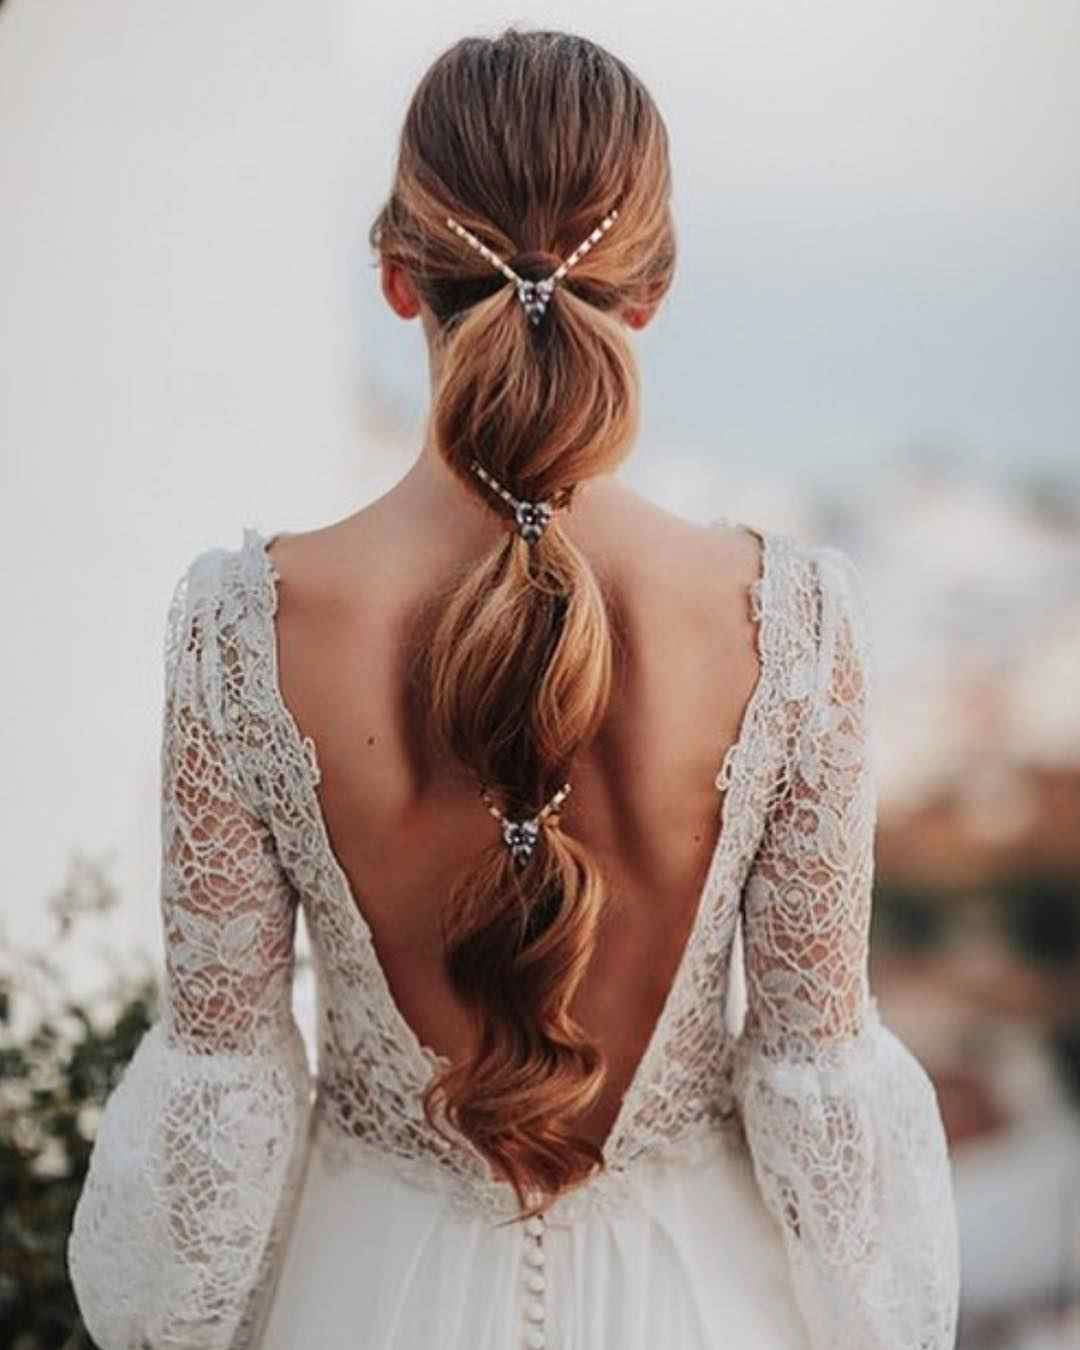 61 Latest Hairstyles For Graduation Ideas 2020